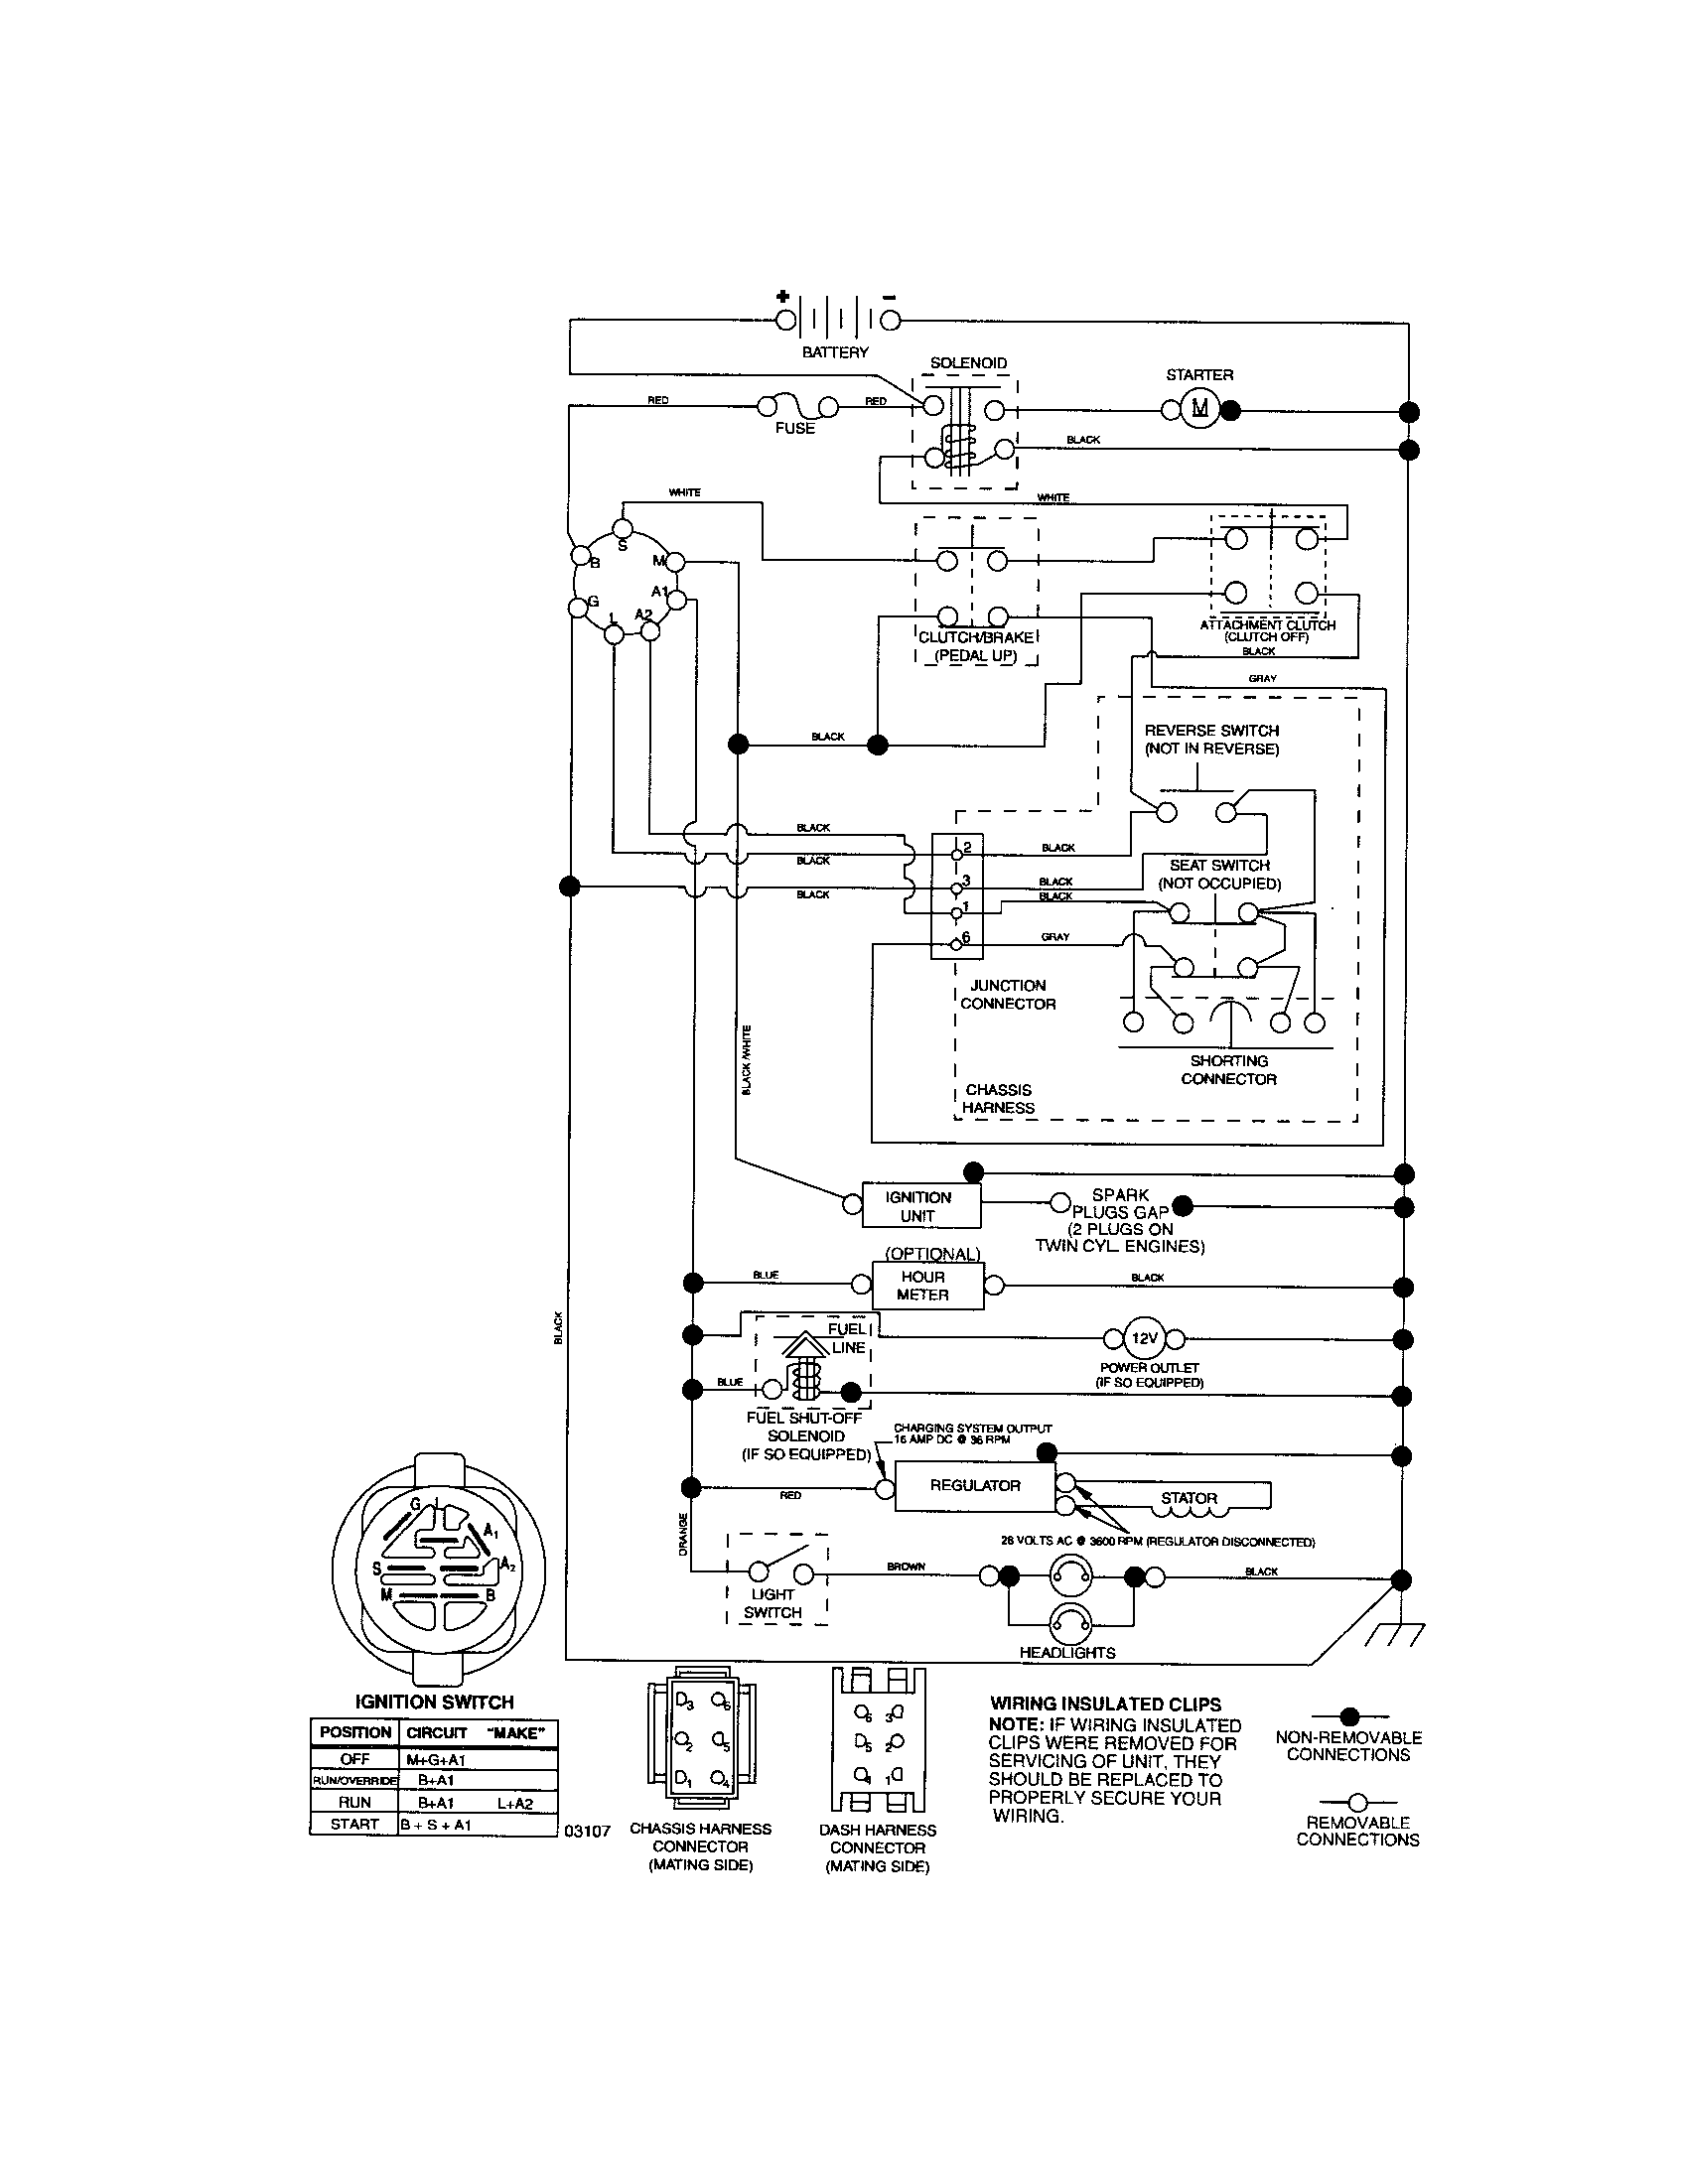 Craftsman Riding Mower Electrical Diagram Wiring Hp Tecumseh Governor Linkage Lawn I Need One For